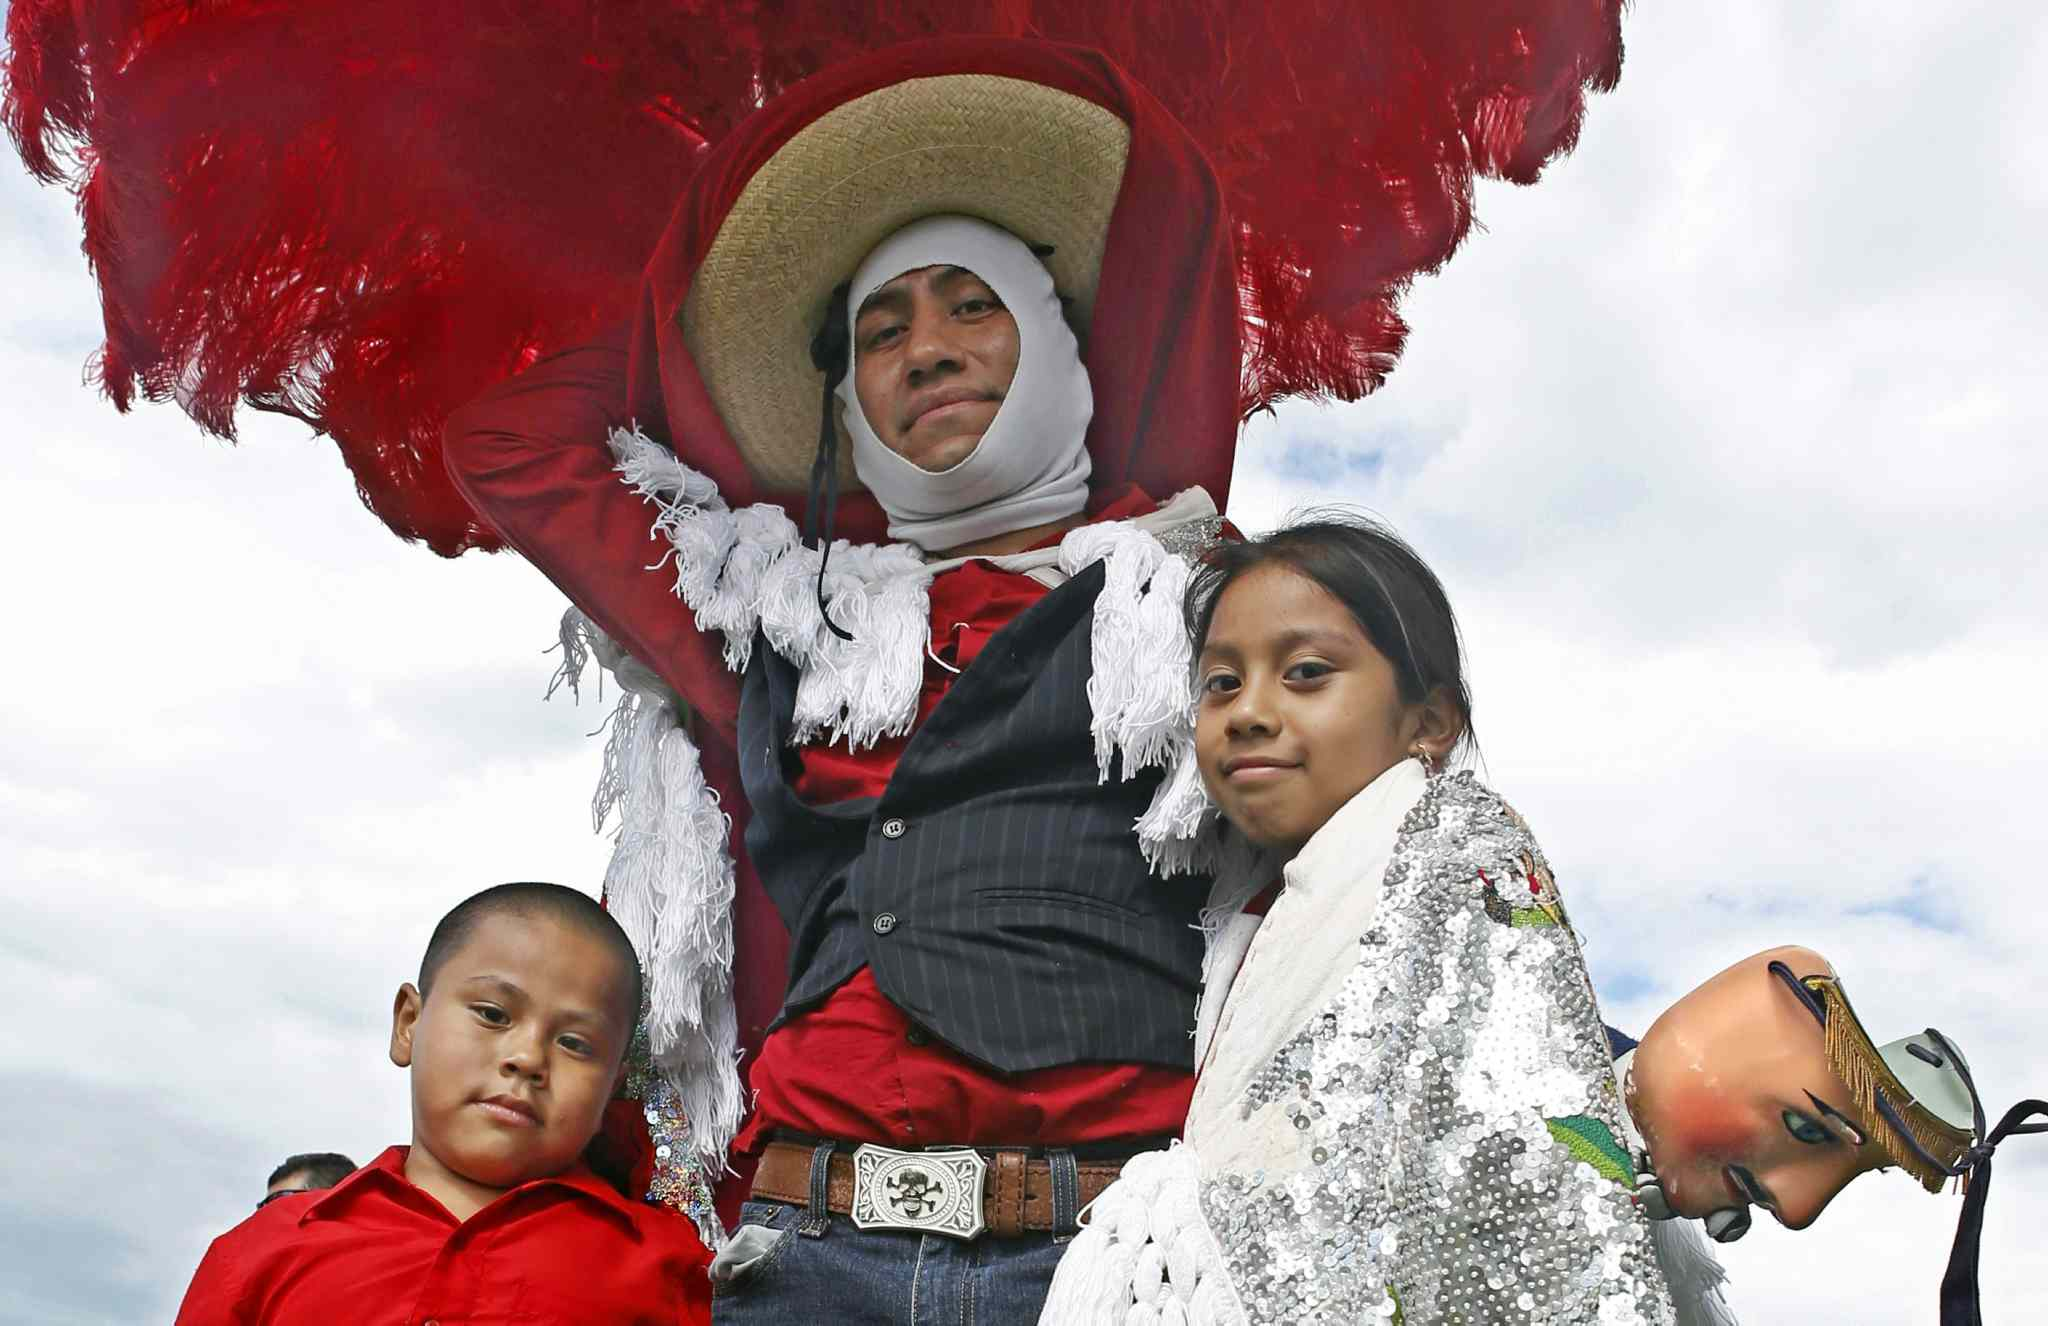 Mario Perez, 30, poses for a photo with his children Michael, 6, and Emily, 7, at a park in the Brooklyn borough of New York. At the park costumed dancers celebrated a festival from their home state of Tlaxcala, Mexico. Being a good dad, Perez said,